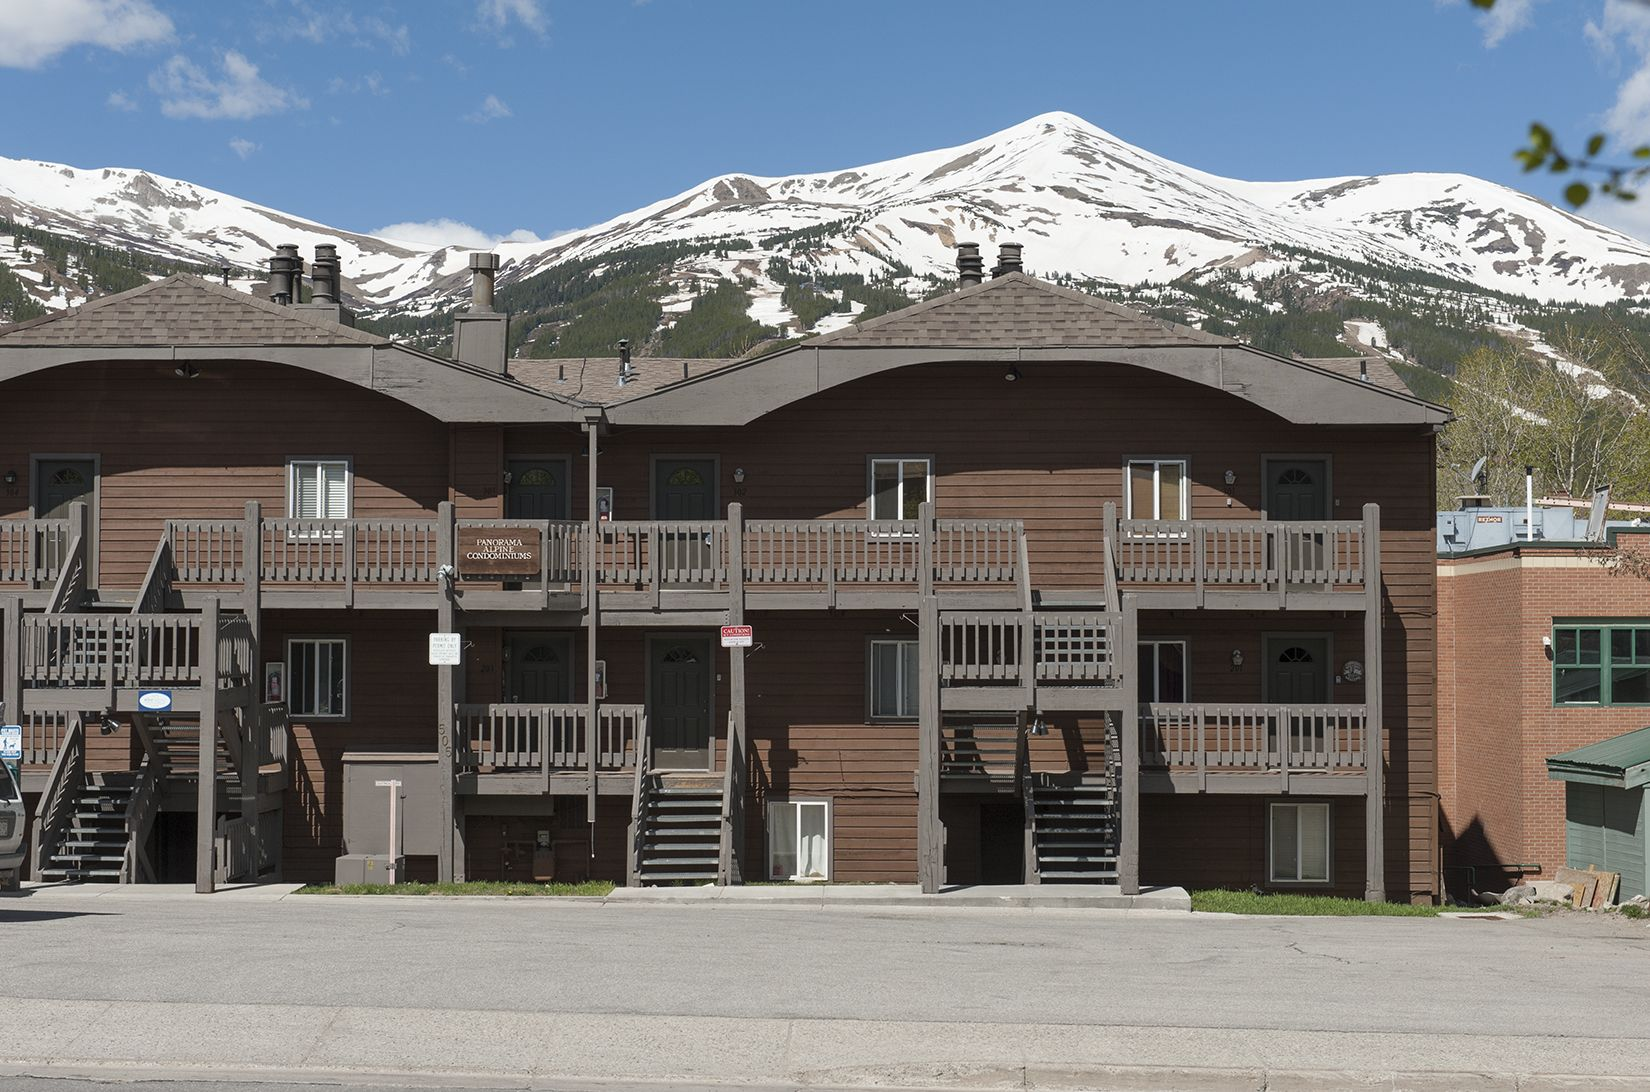 505 S Ridge STREET S # 302 BRECKENRIDGE, Colorado 80424